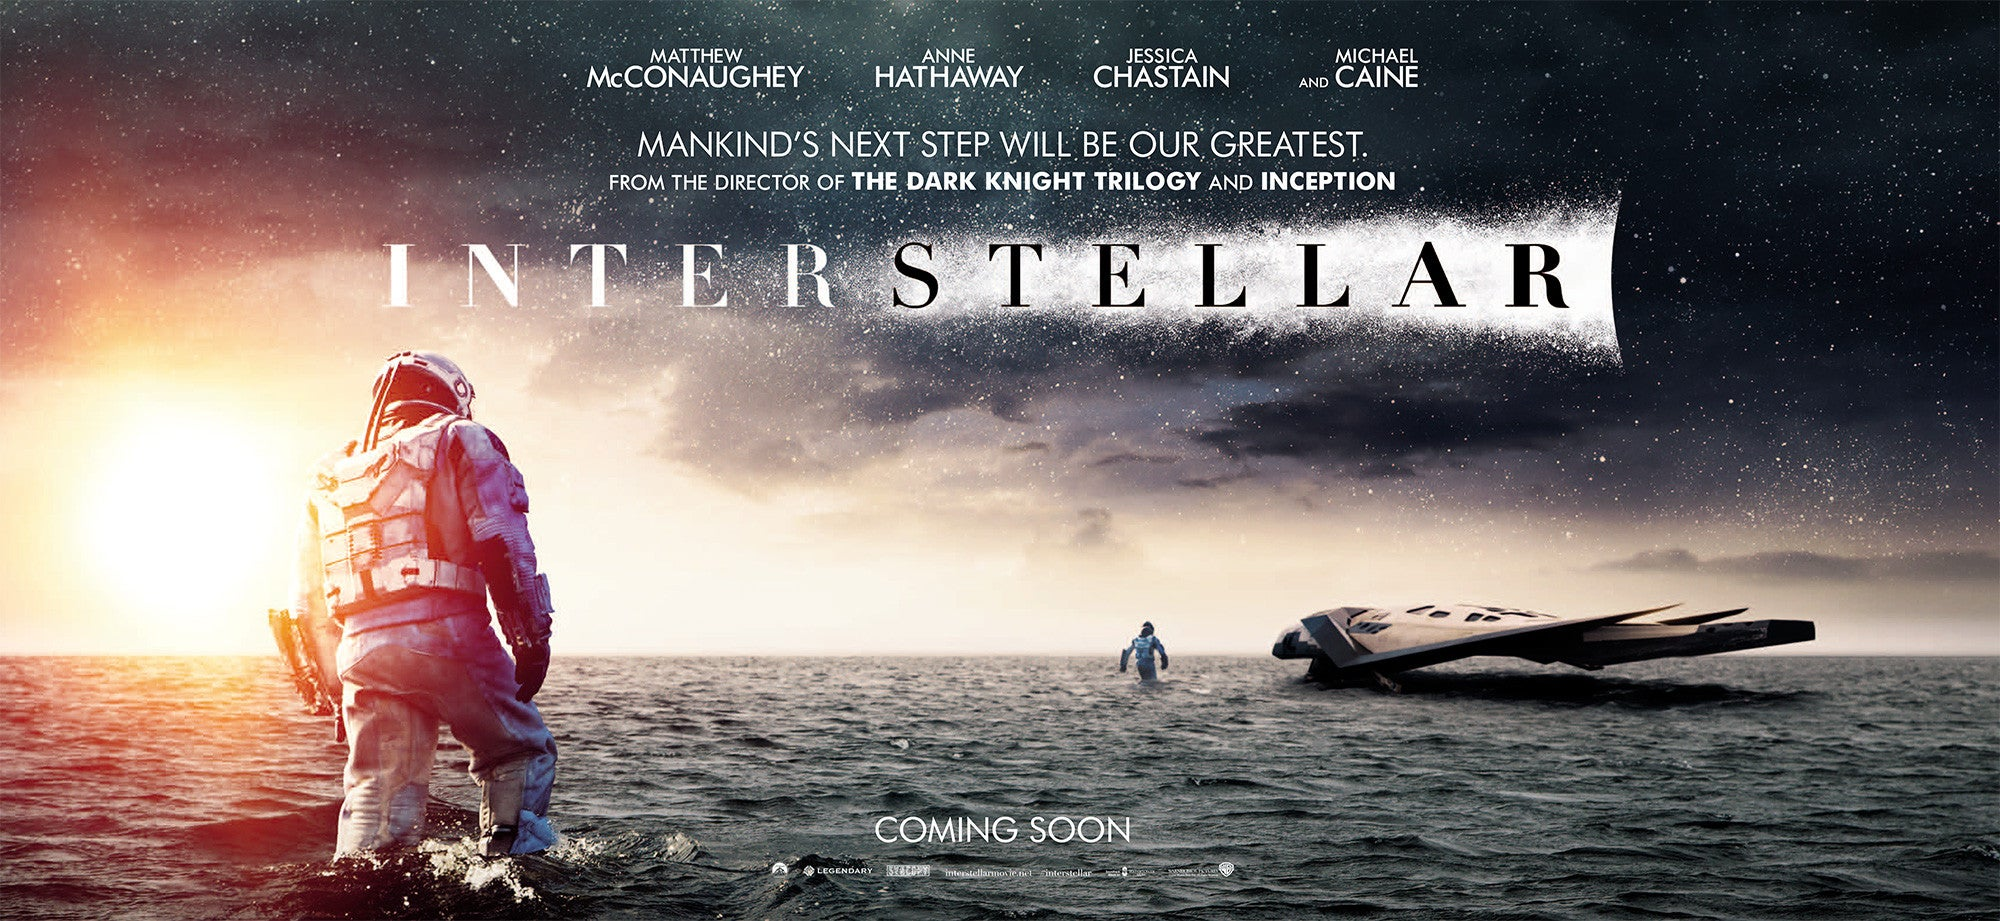 New Interstellar poster and trailers show more of the spaceship